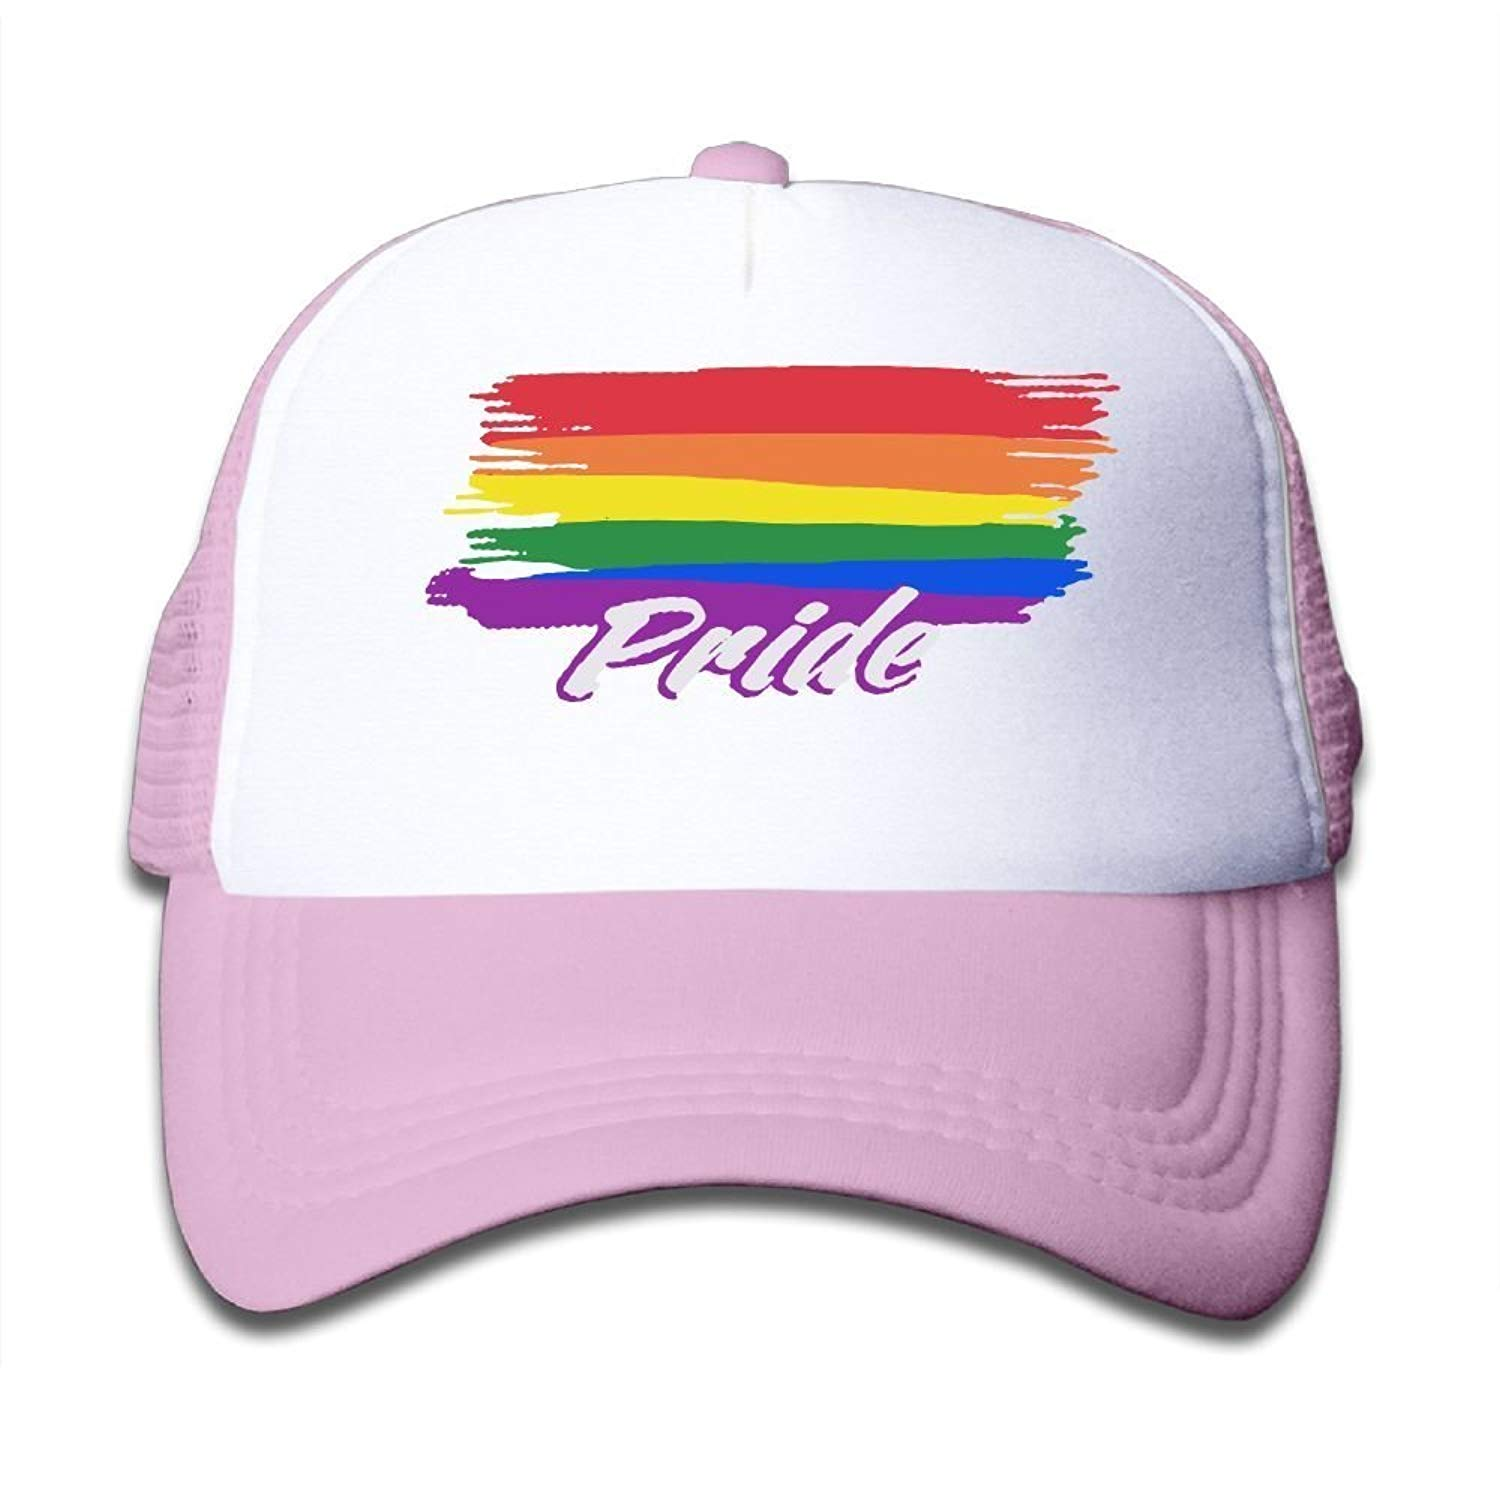 5d934262eb7b0 Get Quotations · BOYGIRL-CAP Rainbow Gay Lesbian Pride Kids Toddler Boys  Girls Adjustable Mesh Cap Trucker Hat